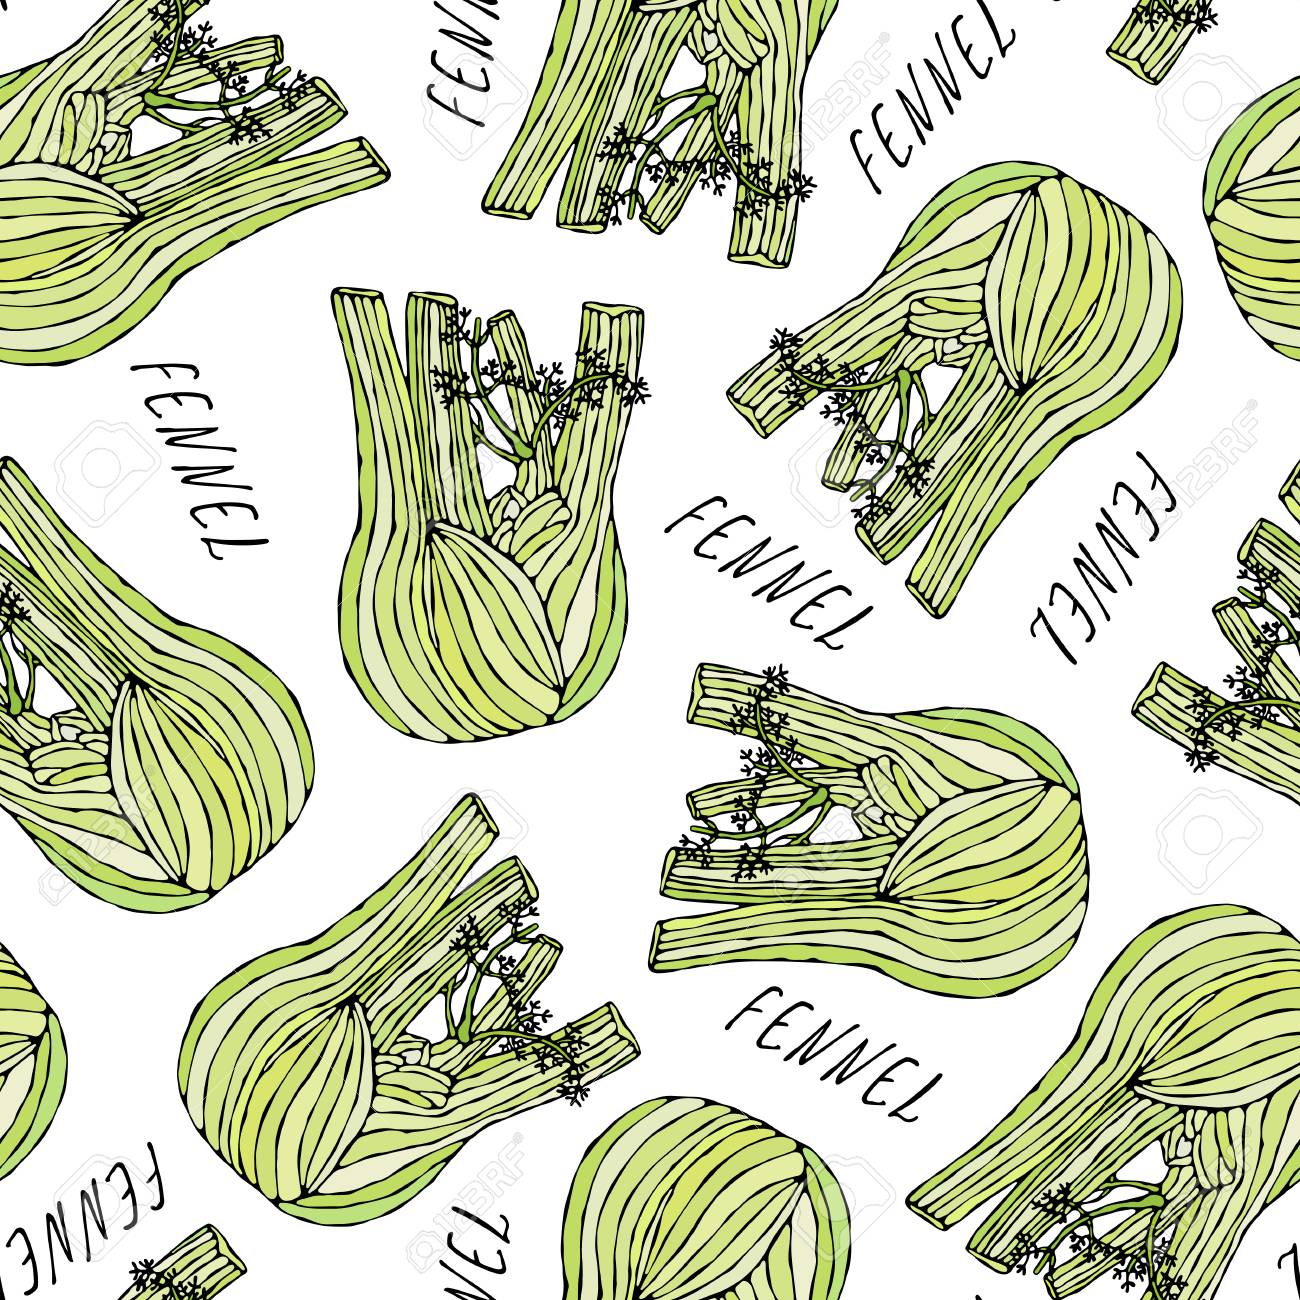 Seamless Endless Pattern of Green Fennel Balb. Vegetable Collection. EPS10 Vector. Hand Drawn Doodle Style Realistic Illustration - 127696327